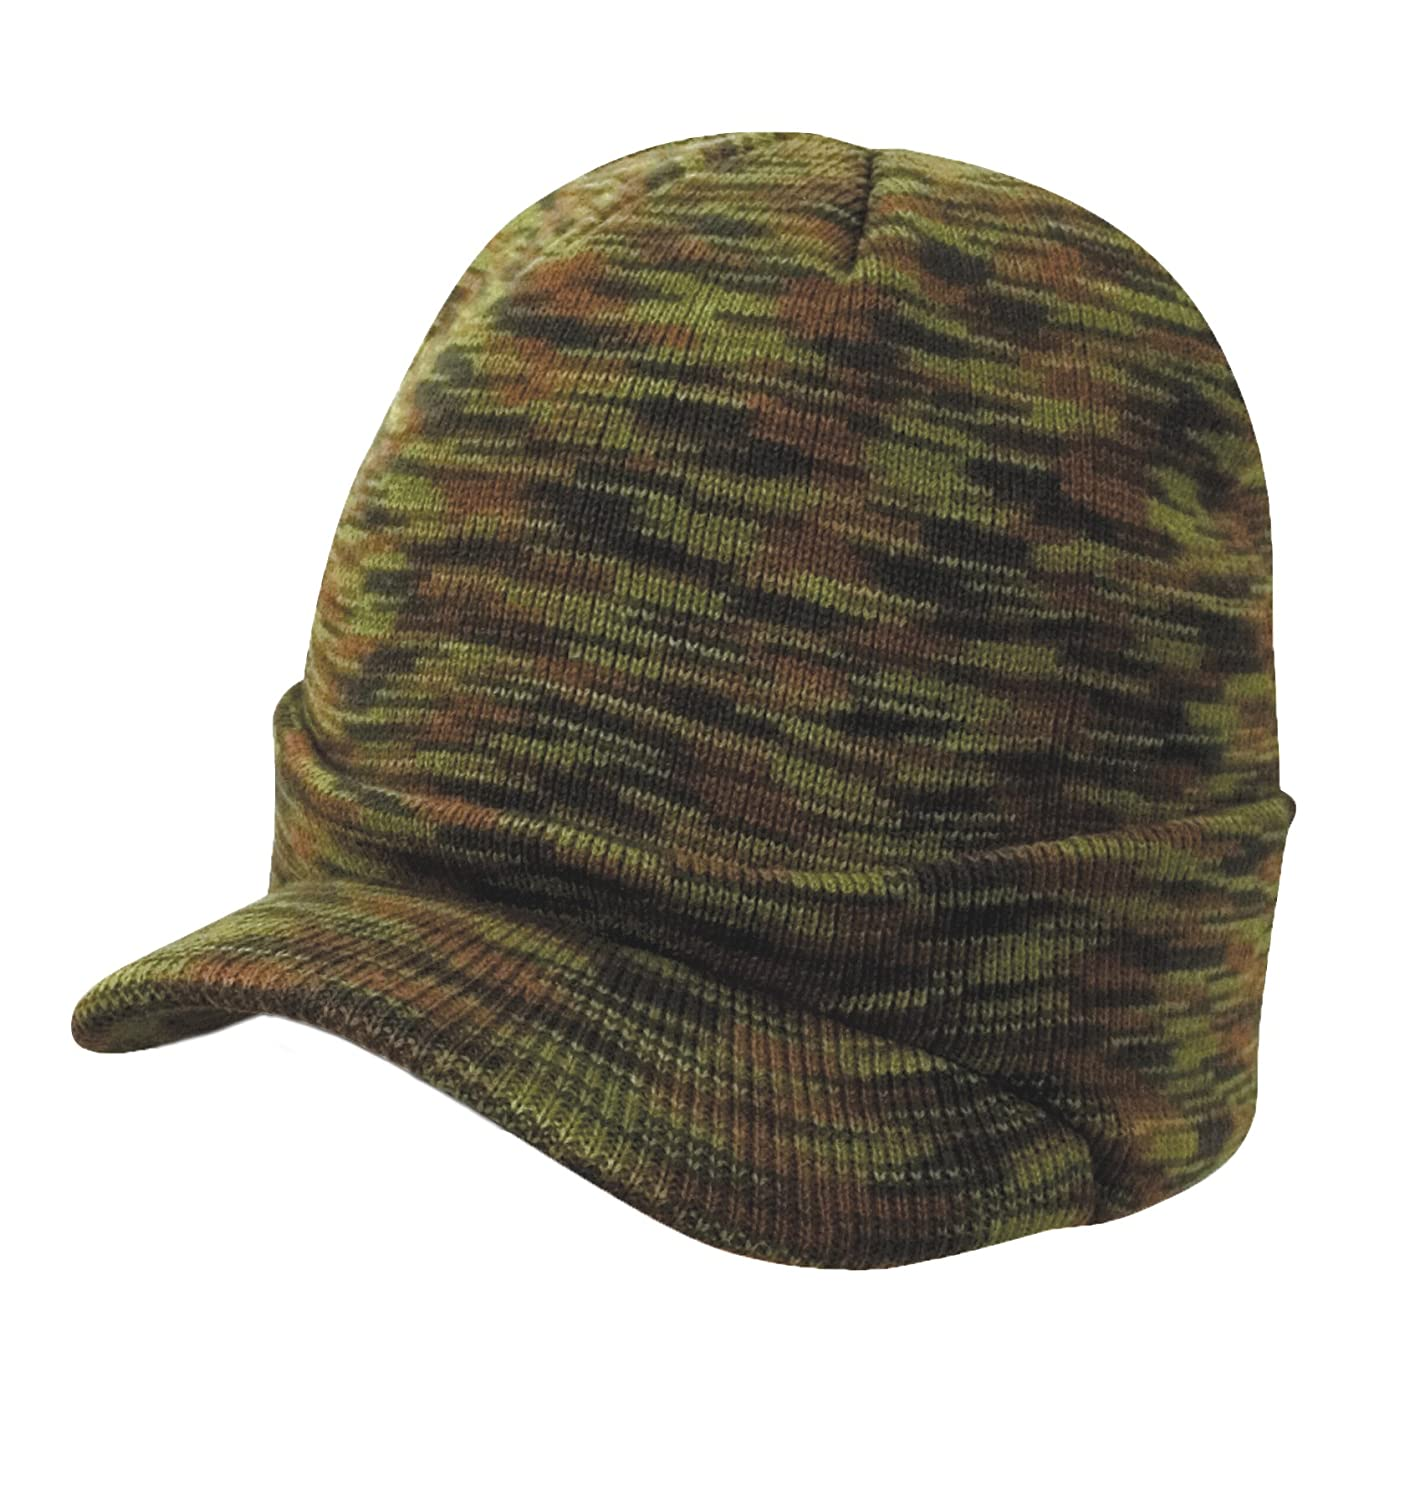 Youth Peaked Beanie Hat Winter Army Cadet Wooly Cap RC-060-KIDS-KHAKI